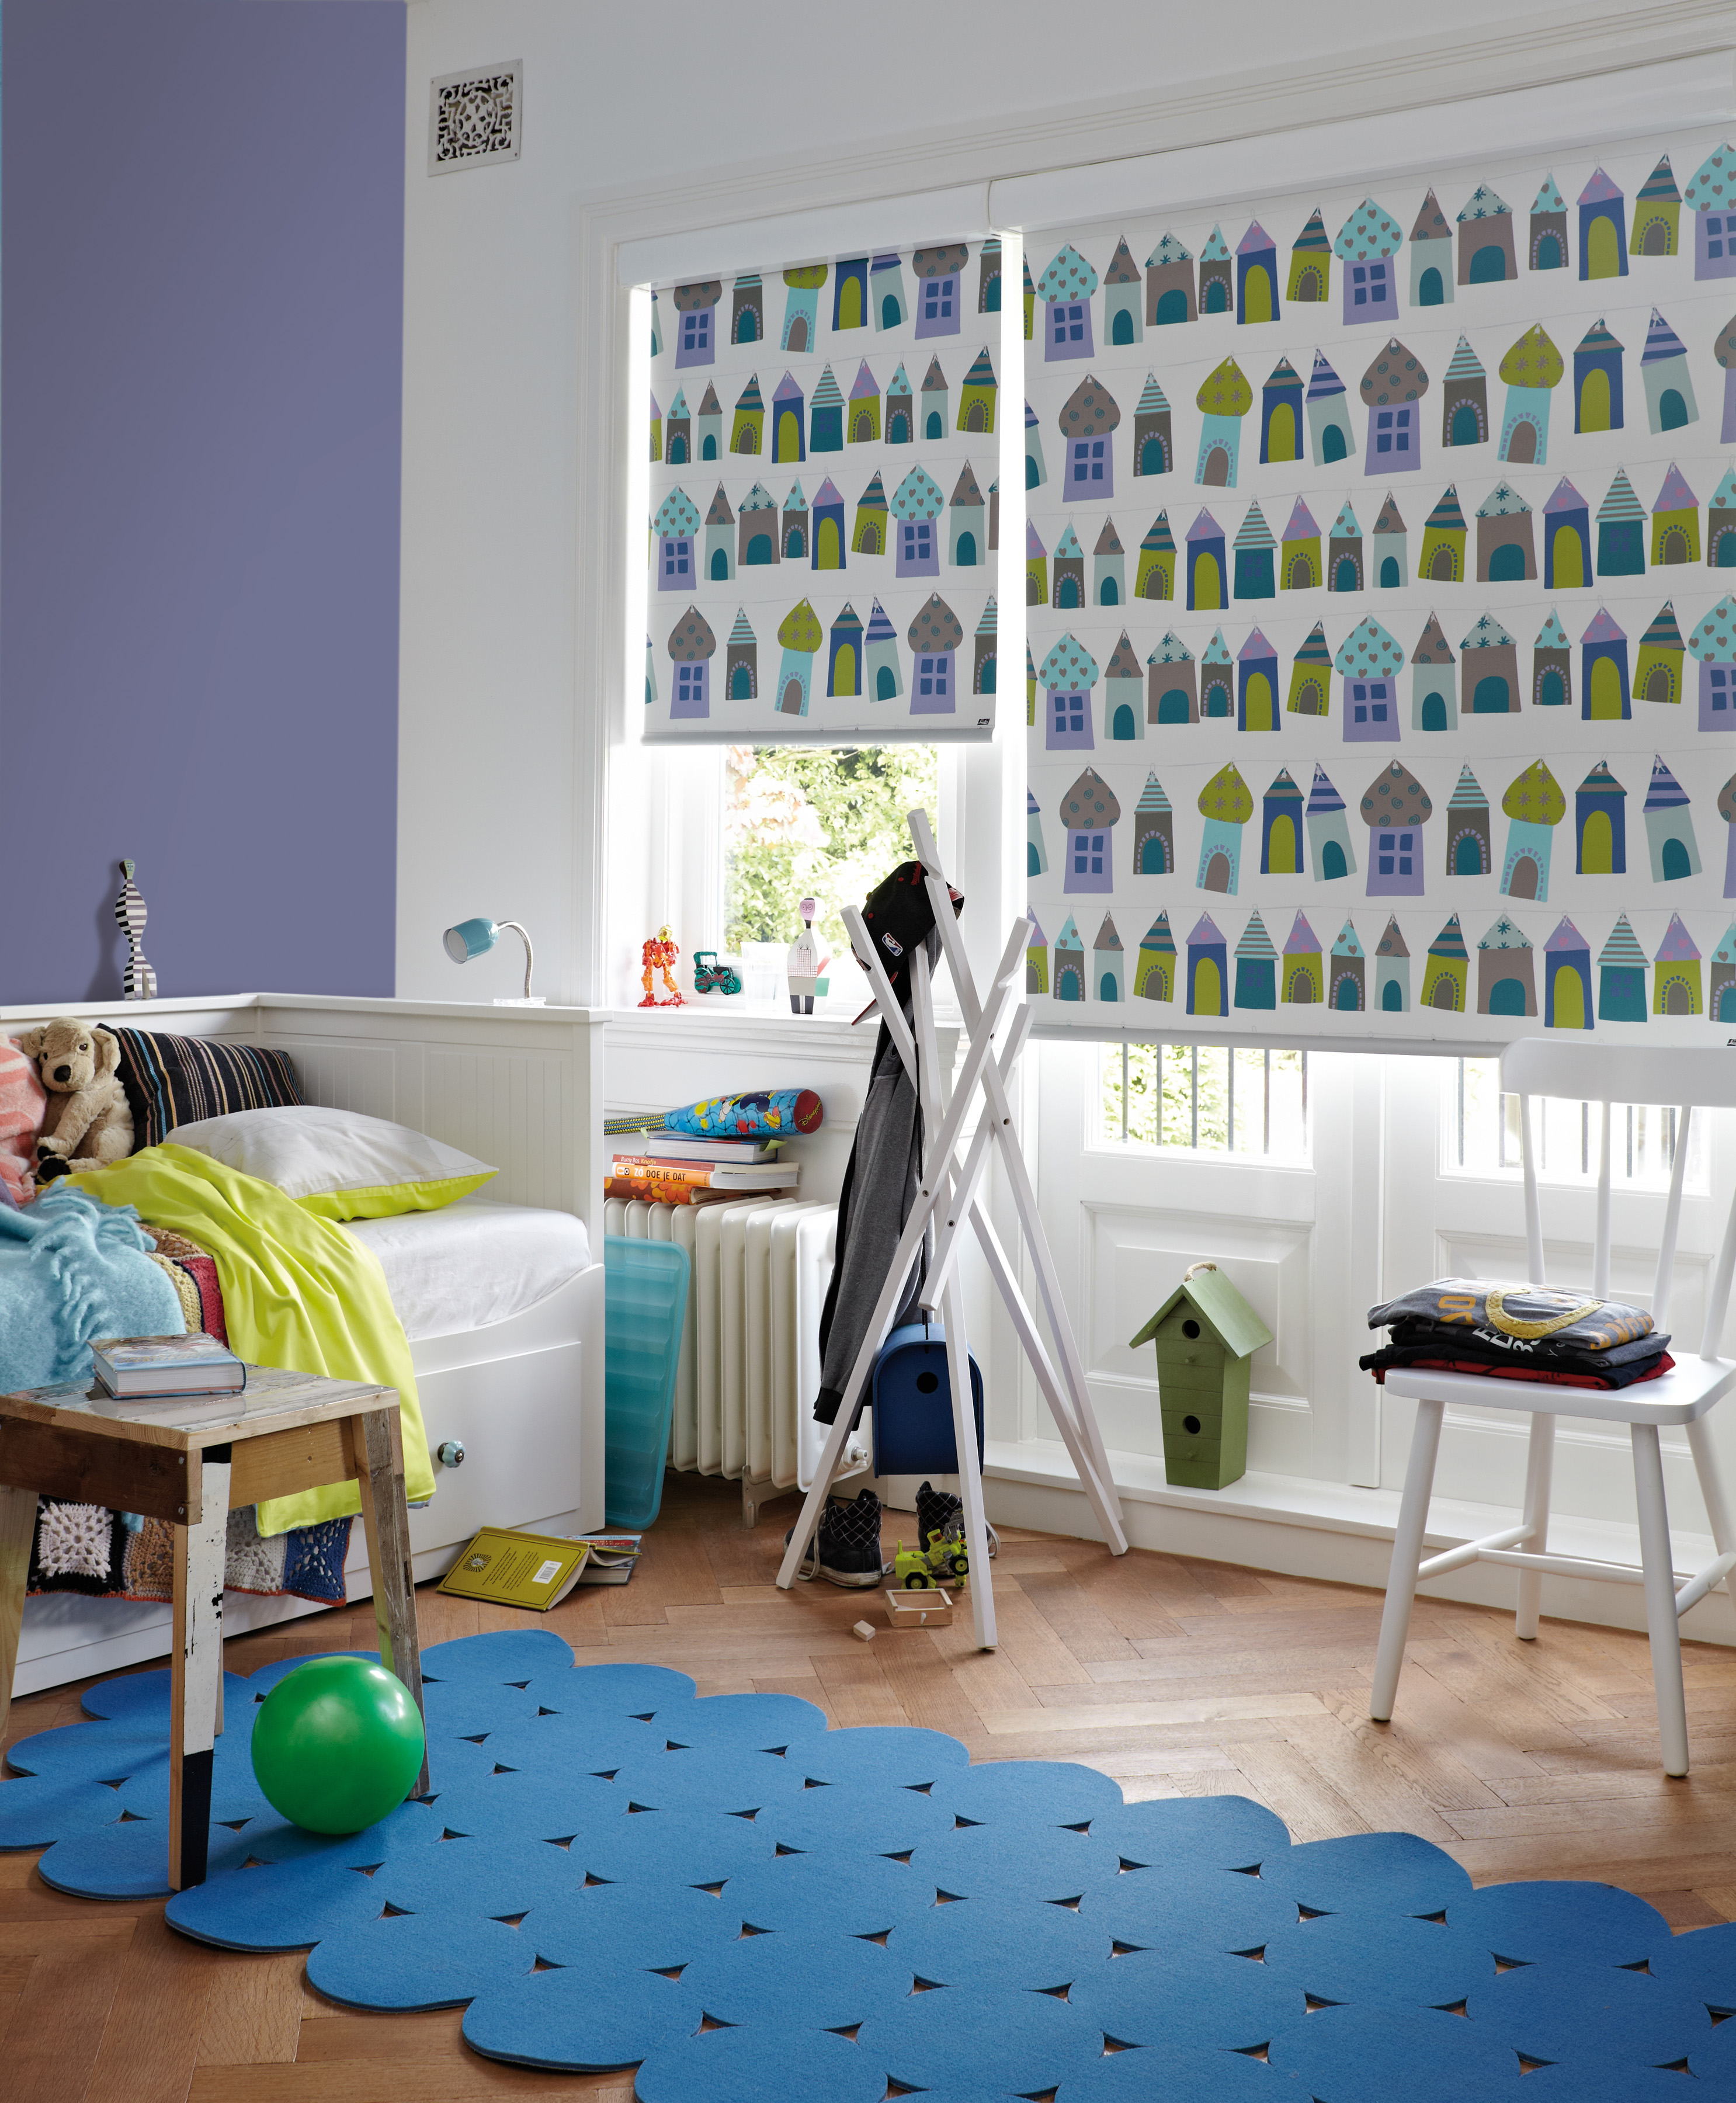 Review: Luxaflex roller blind